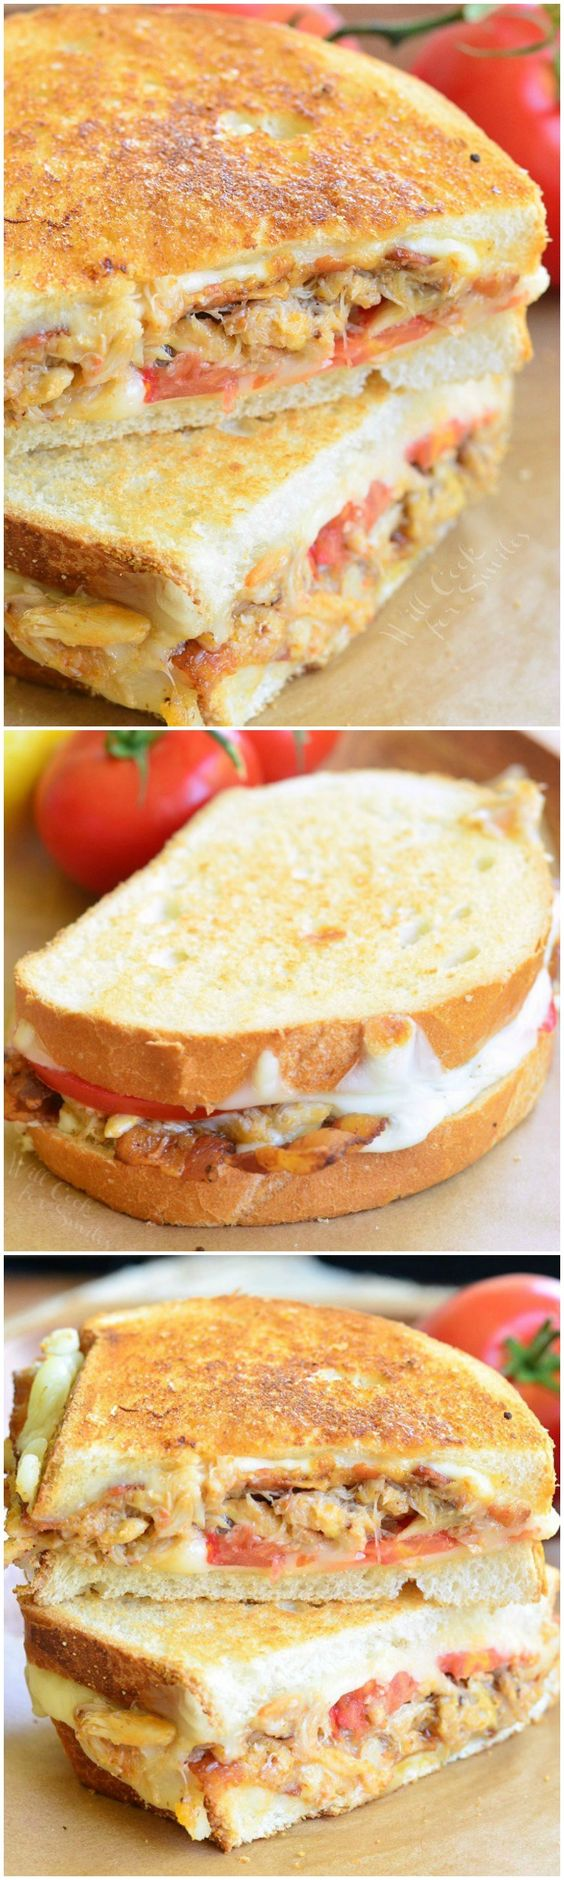 Tomato Bacon and Crab Grilled Cheese | Recipe | Bacon ...